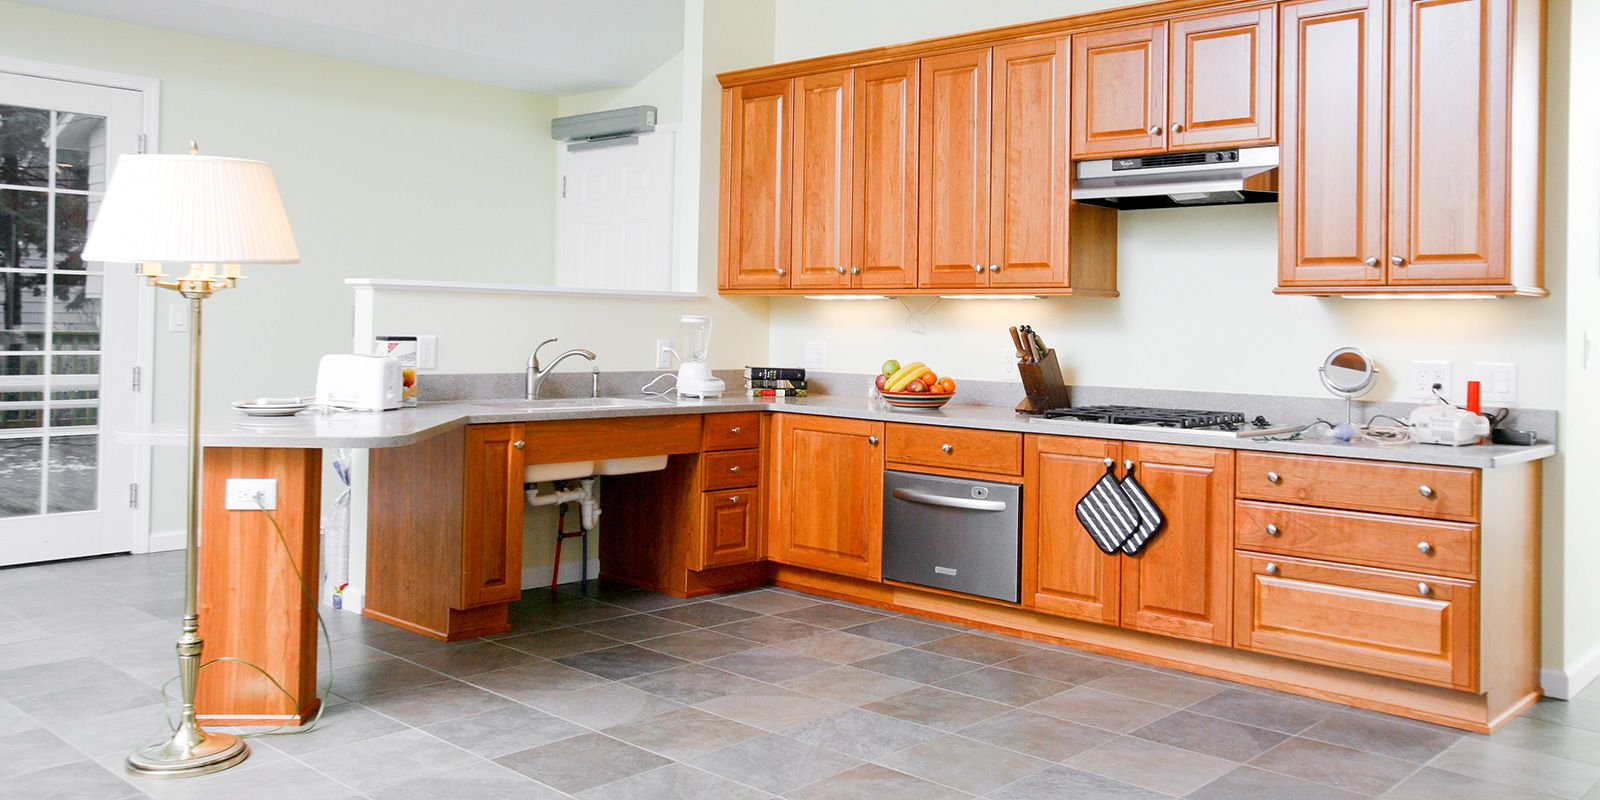 Pittsford In-Law Suite - Home Remodeling | Home ...